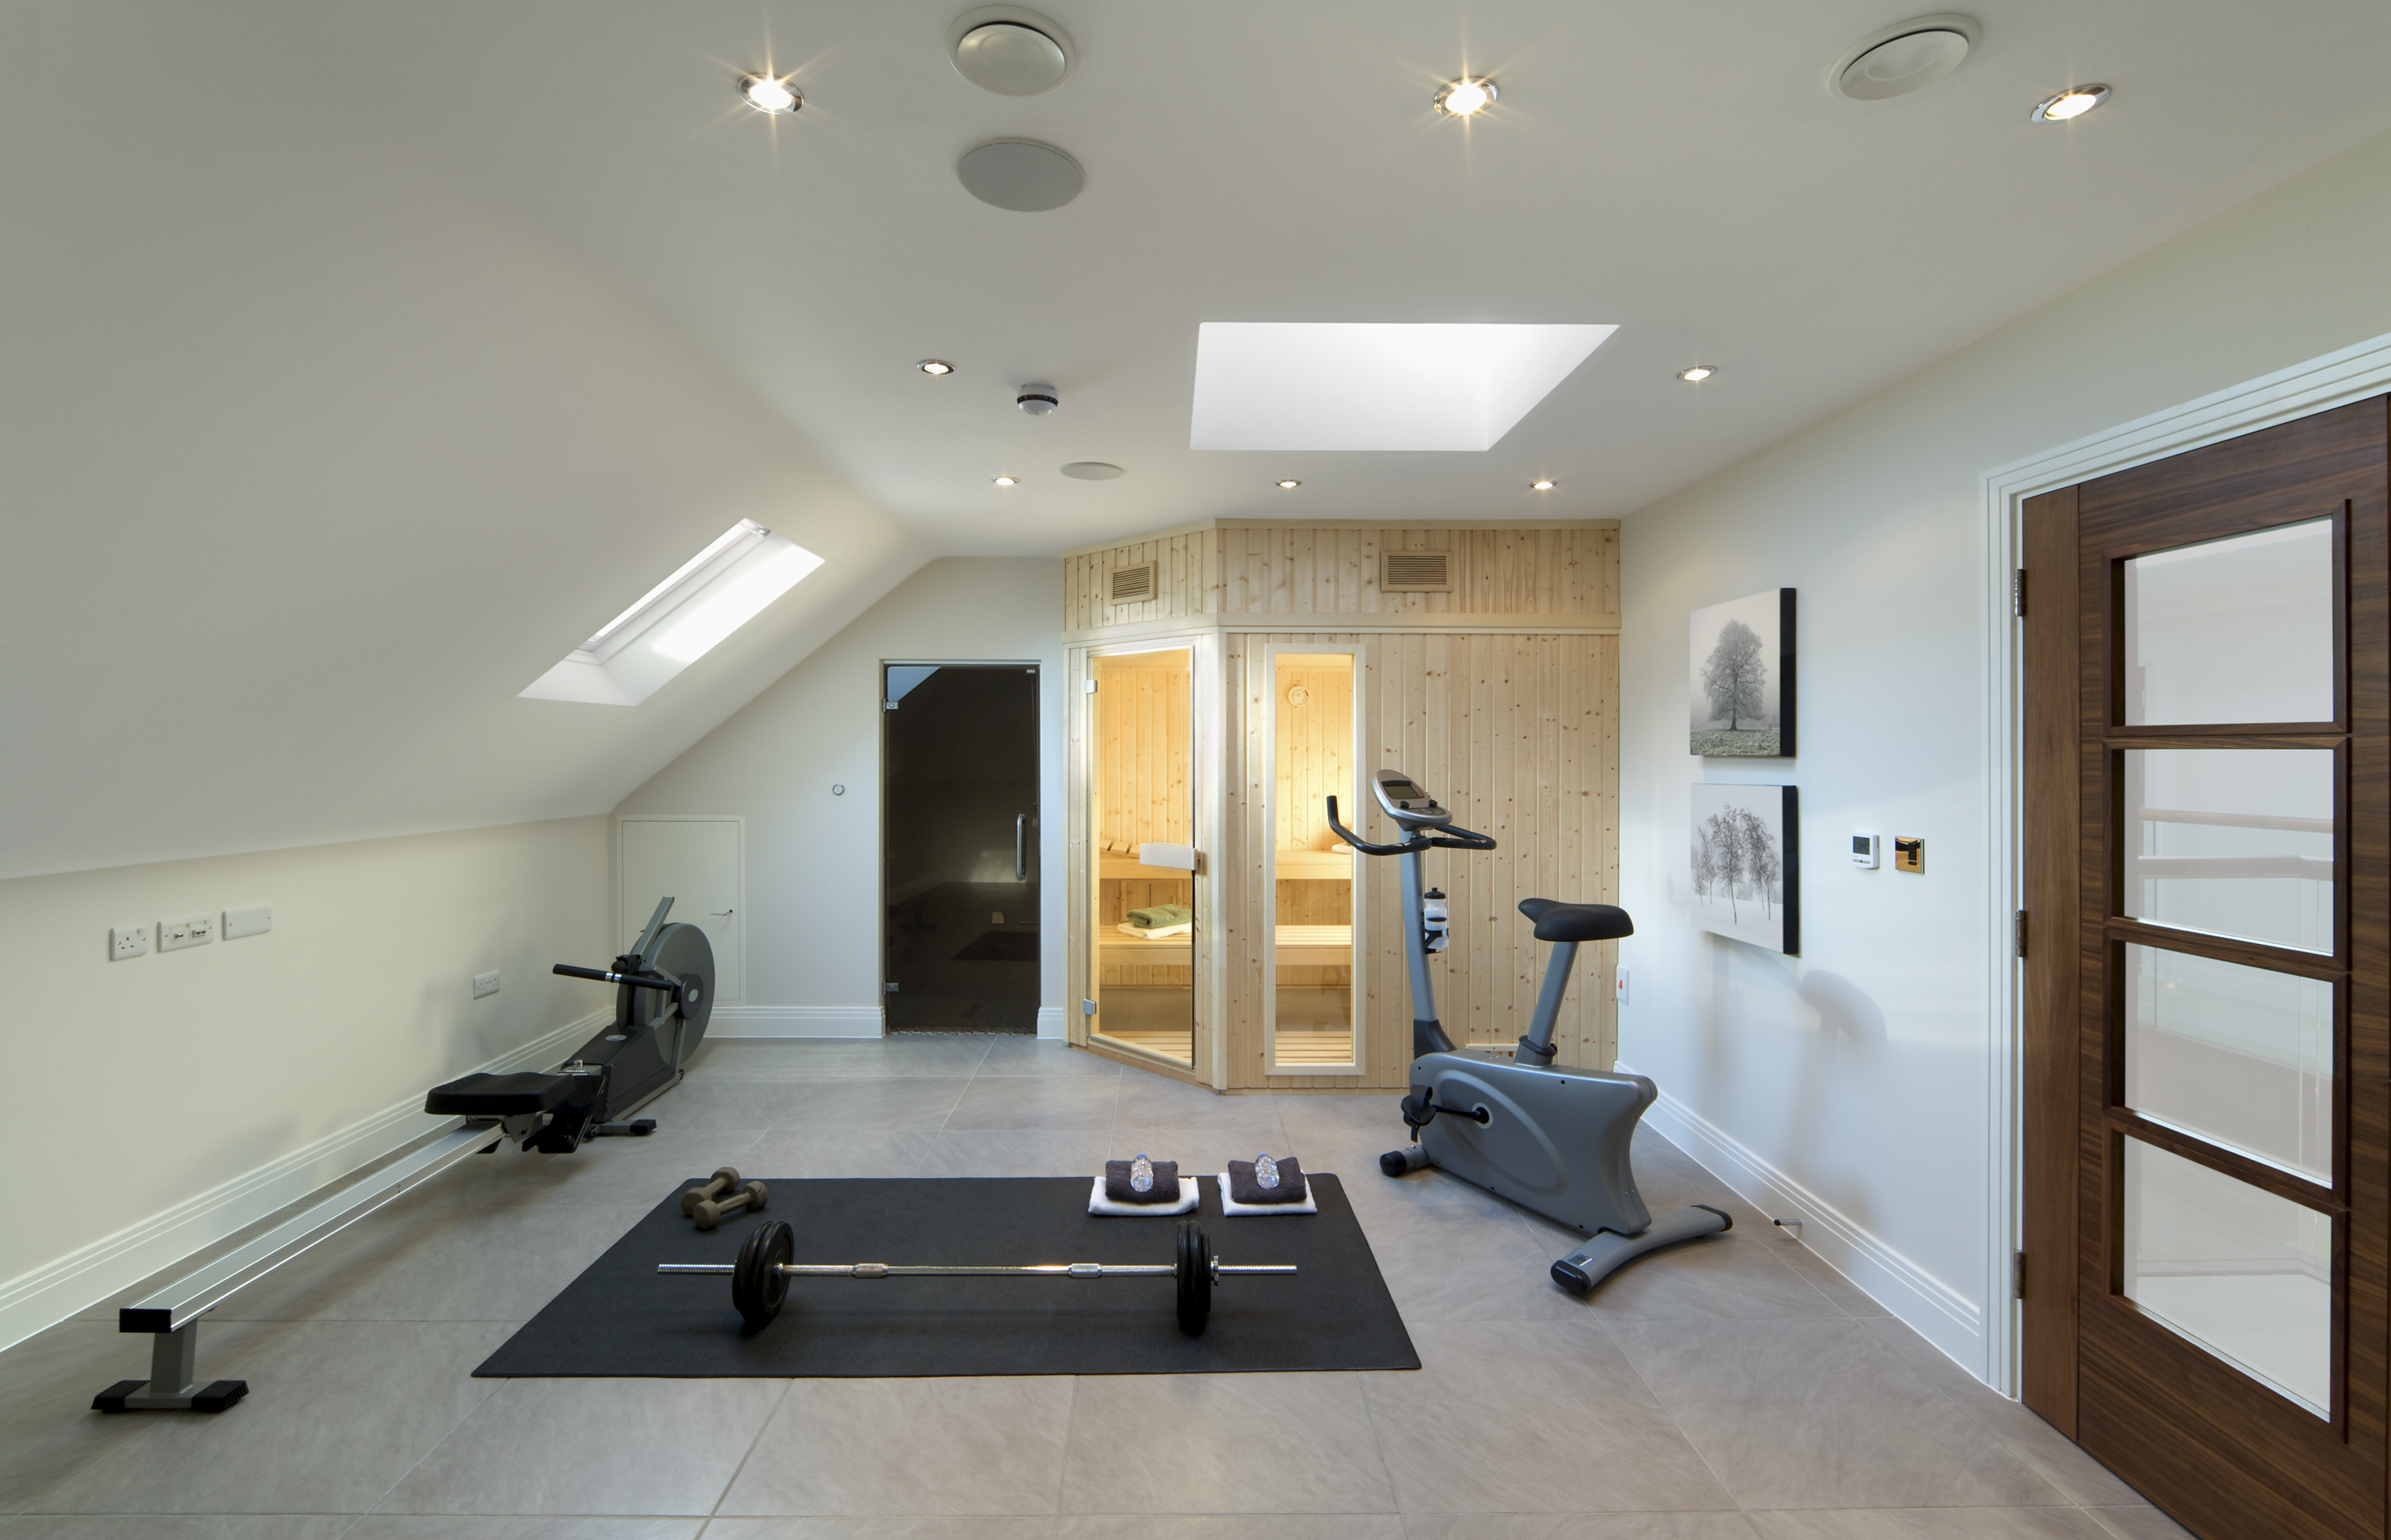 """A gym and sauna room in the loft of a luxury new home. Next to the sauna is a shower cubicle. Equipment includes an exercise bike, rowing machine and some free weights. Natural light is streaming in through two skylight windows. Photographer's own imagery on walls.Please see my other Interior and Architectural images by clicking on the Lightbox link below...A>AA>A"""